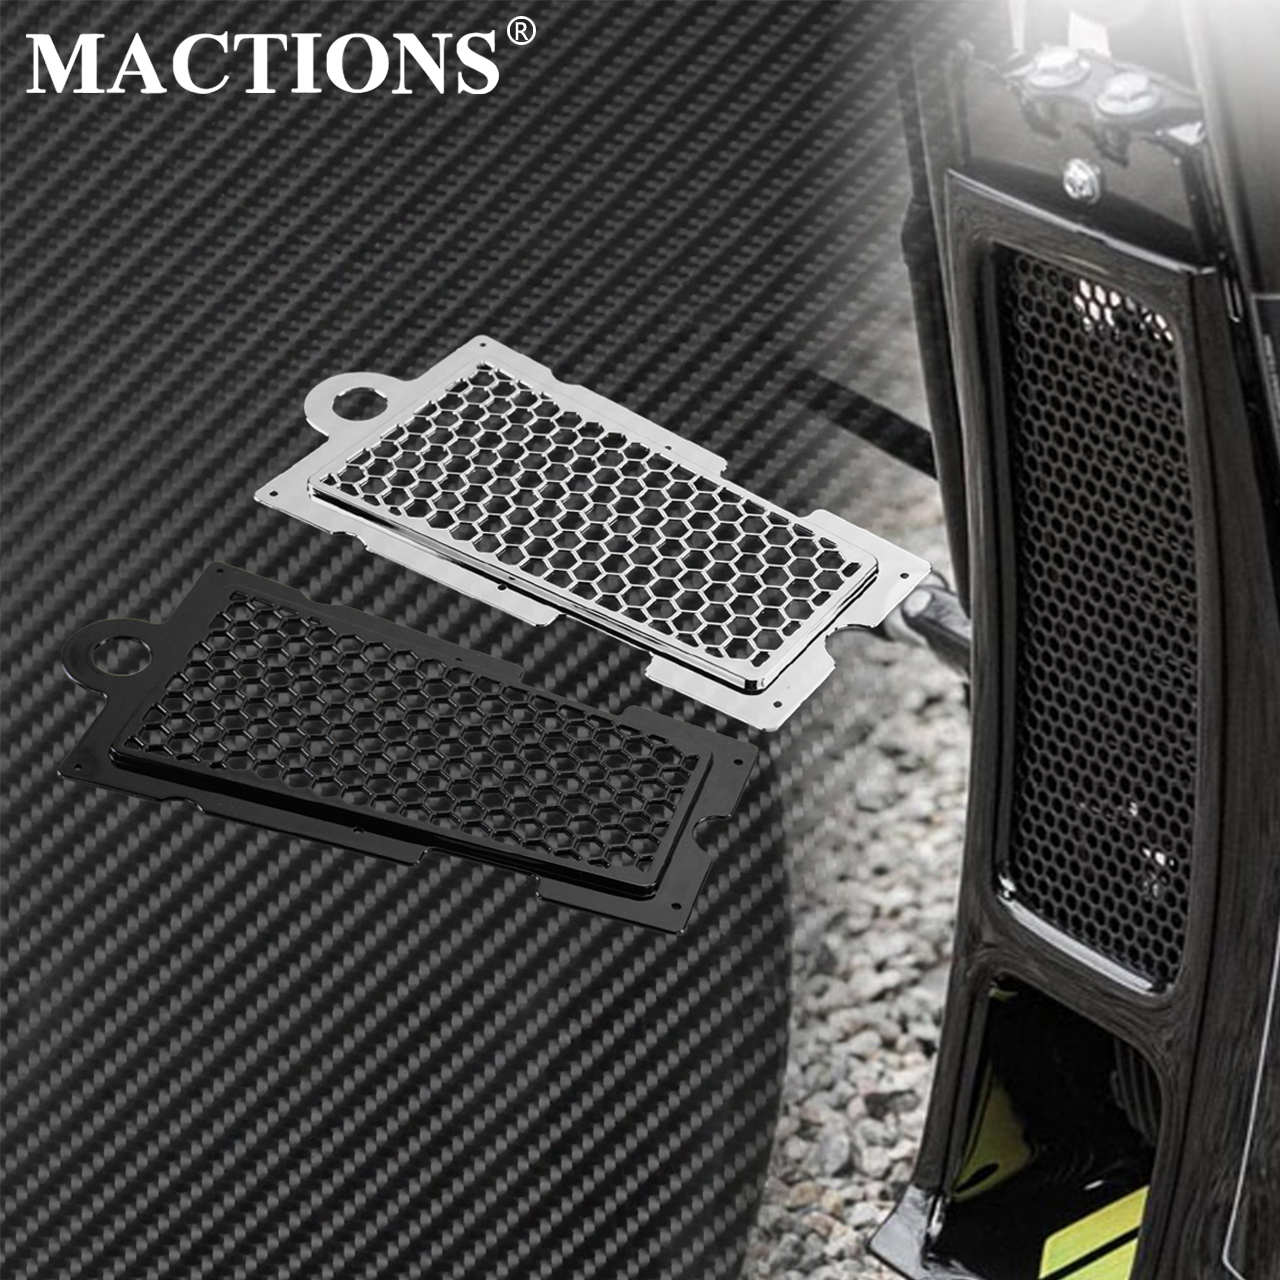 Motorcycle Honeycomb Mesh Radiator Guard Grille Oil Radiator Shield Protection Cover For Harley Softail Fat Boy Street Bob FXLR|Covers & Ornamental Mouldings| |  - title=